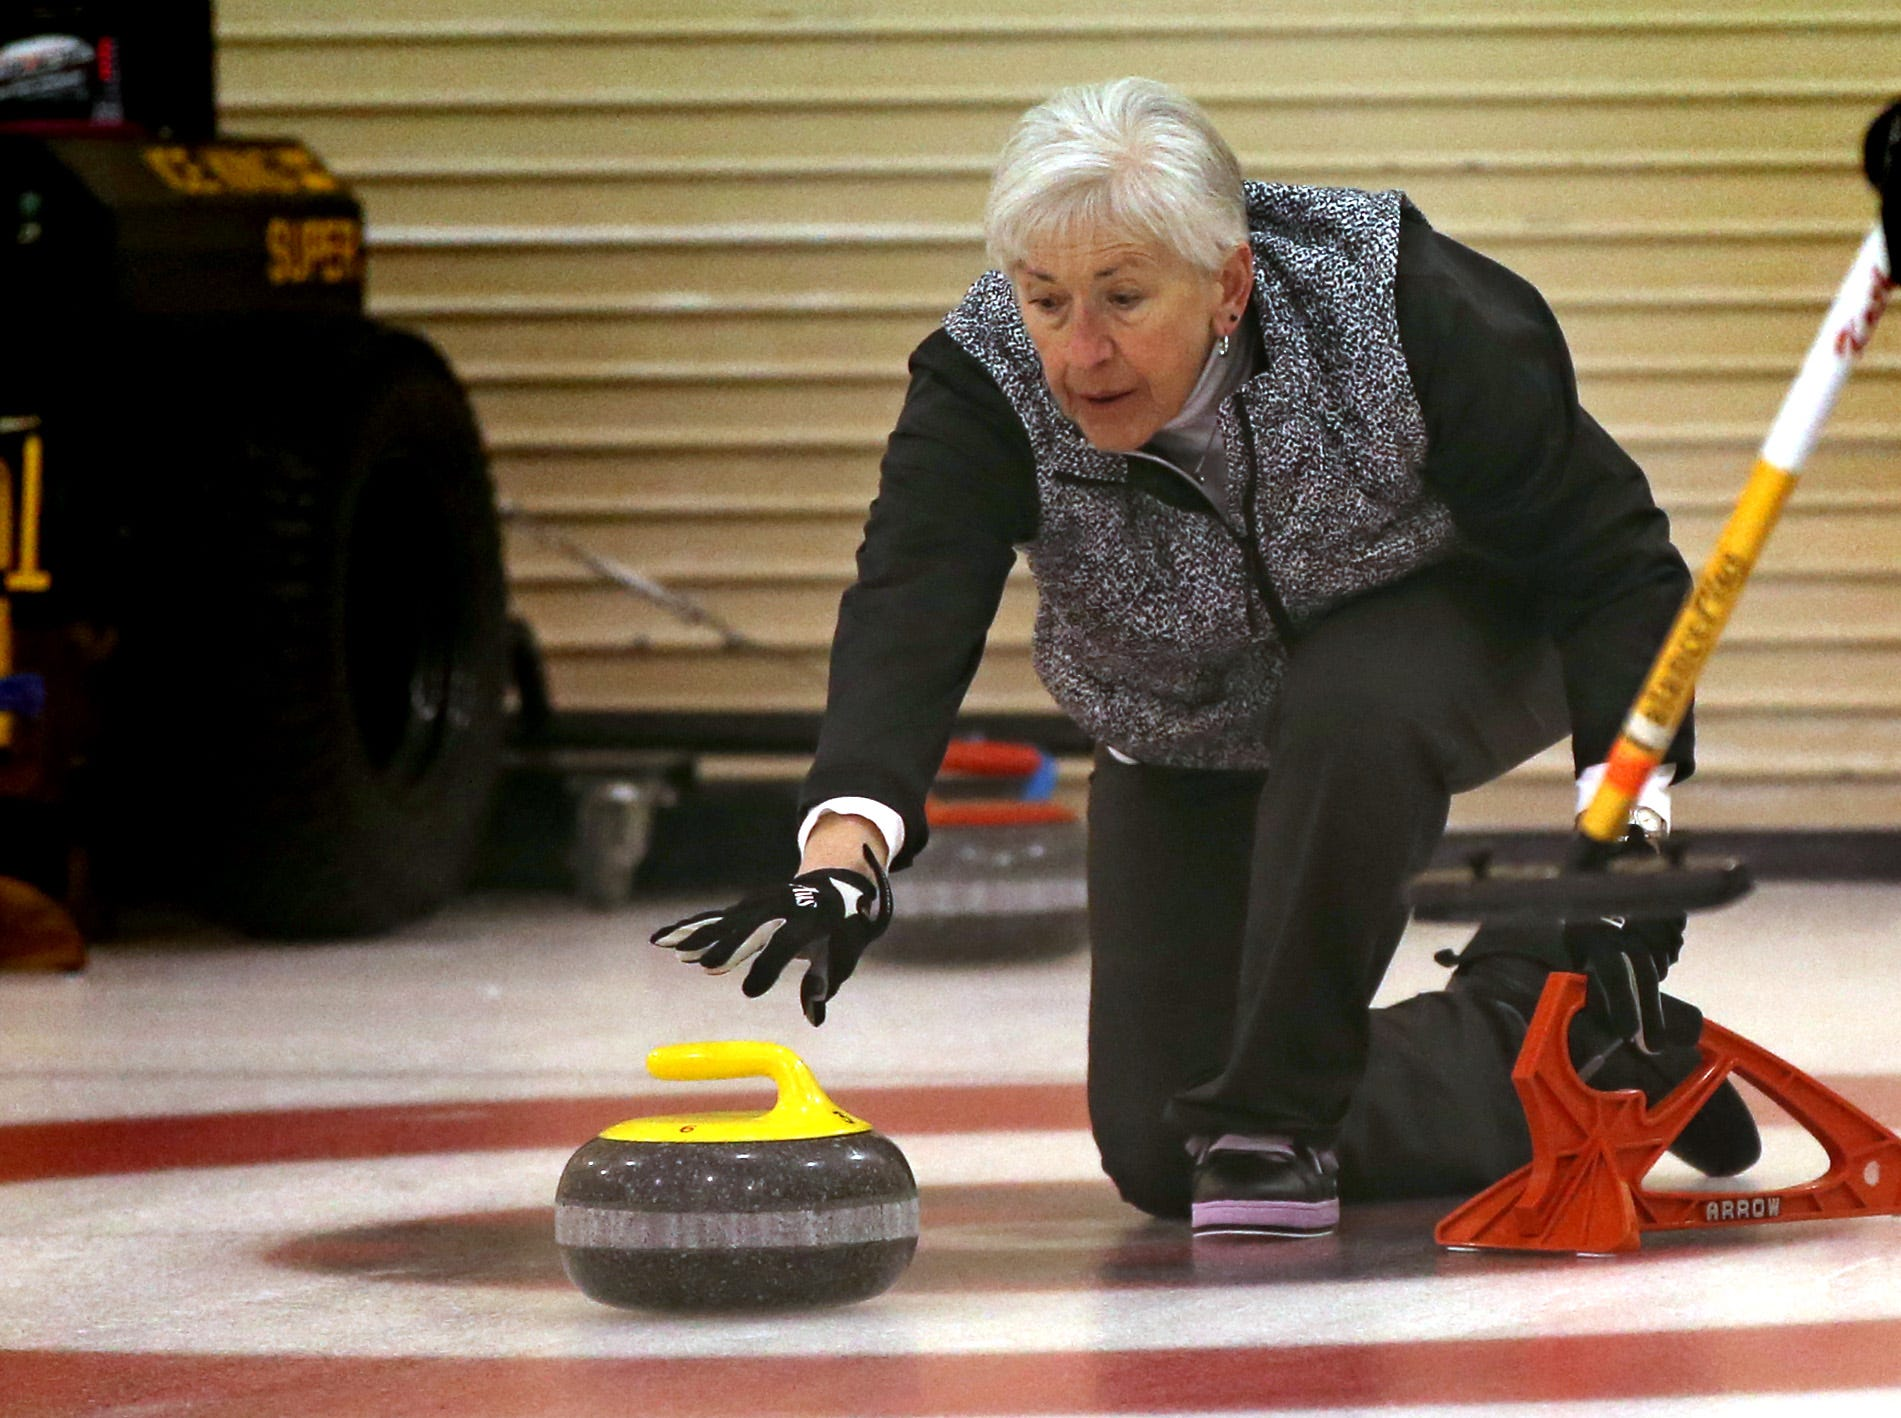 Carol Stevenson of the Kettle Moraine Curling Club starts a stone's slide during the Wauwatosa Curling Club's 60th annual Badger Women's Bonspiel at the Mueller Building in Hart Park on Jan. 25.